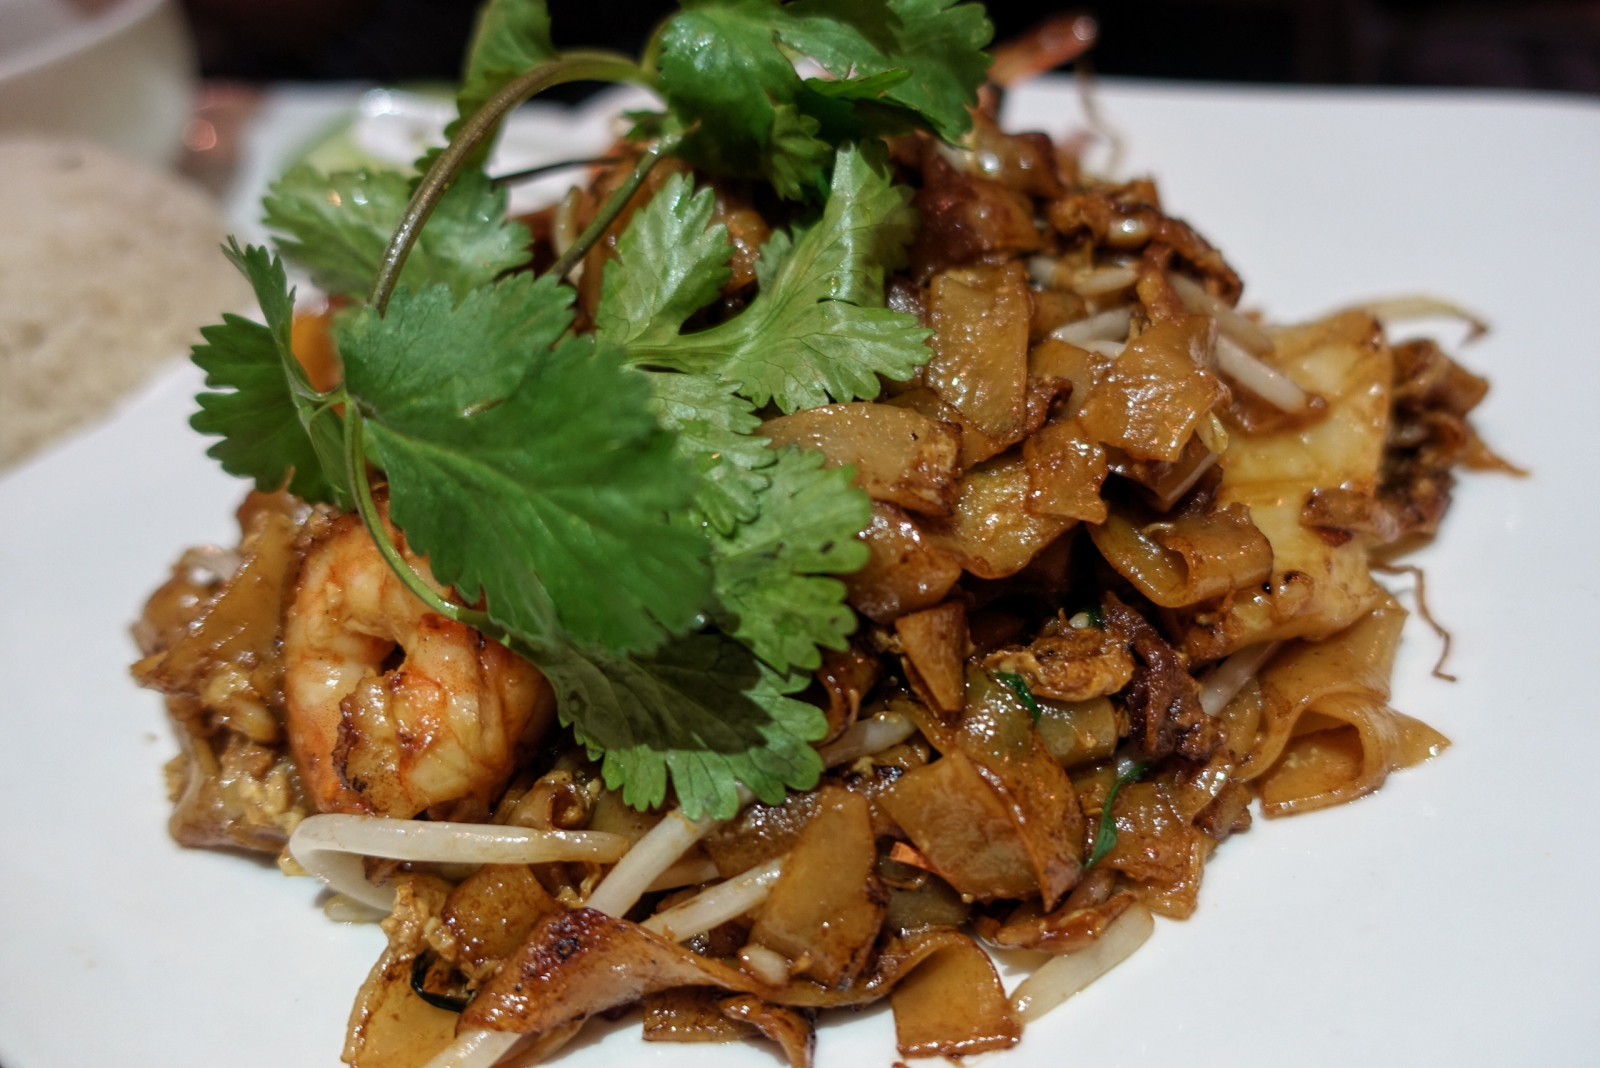 Char kuay teow at Rasa Sayang in London